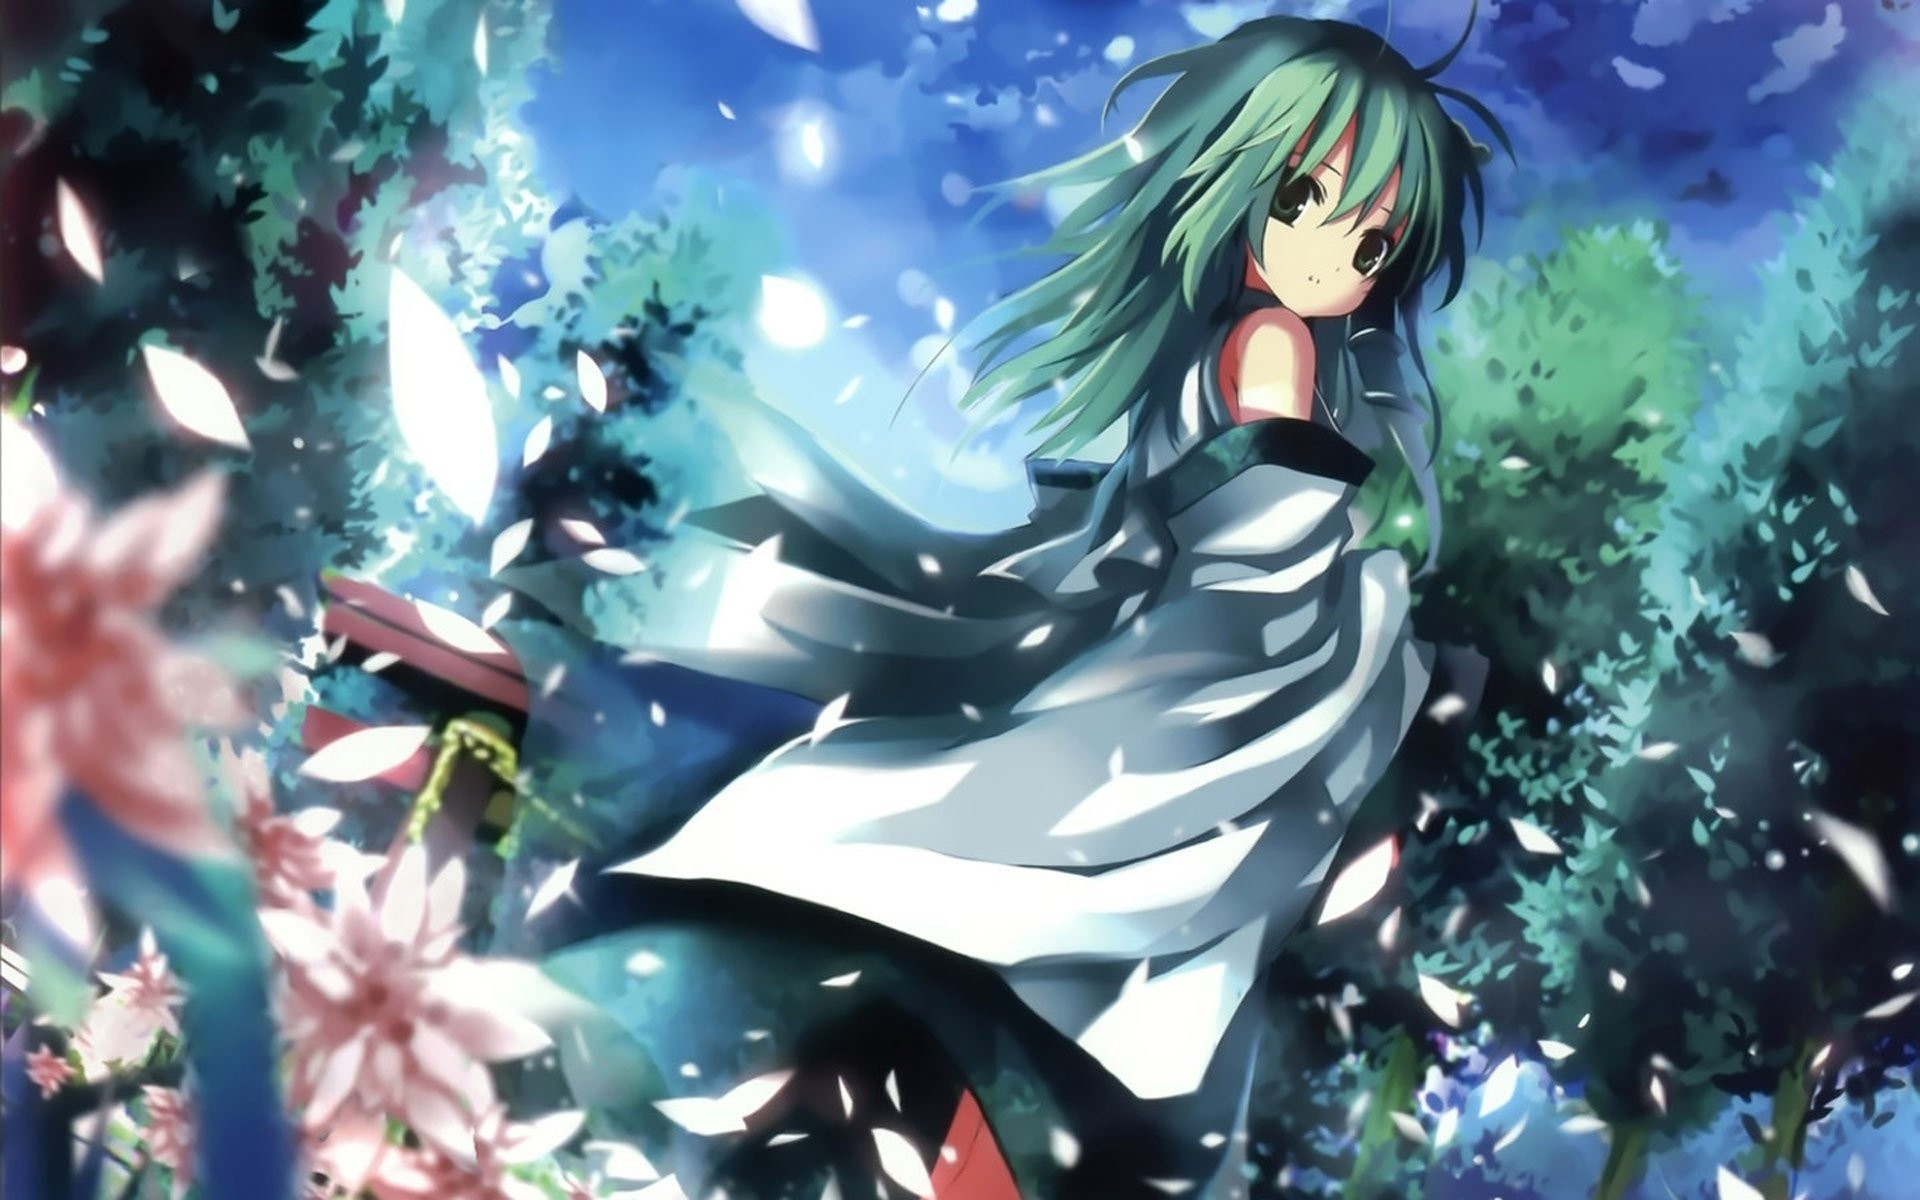 Cute anime wallpapers hd 61 images - Portrait anime wallpaper ...